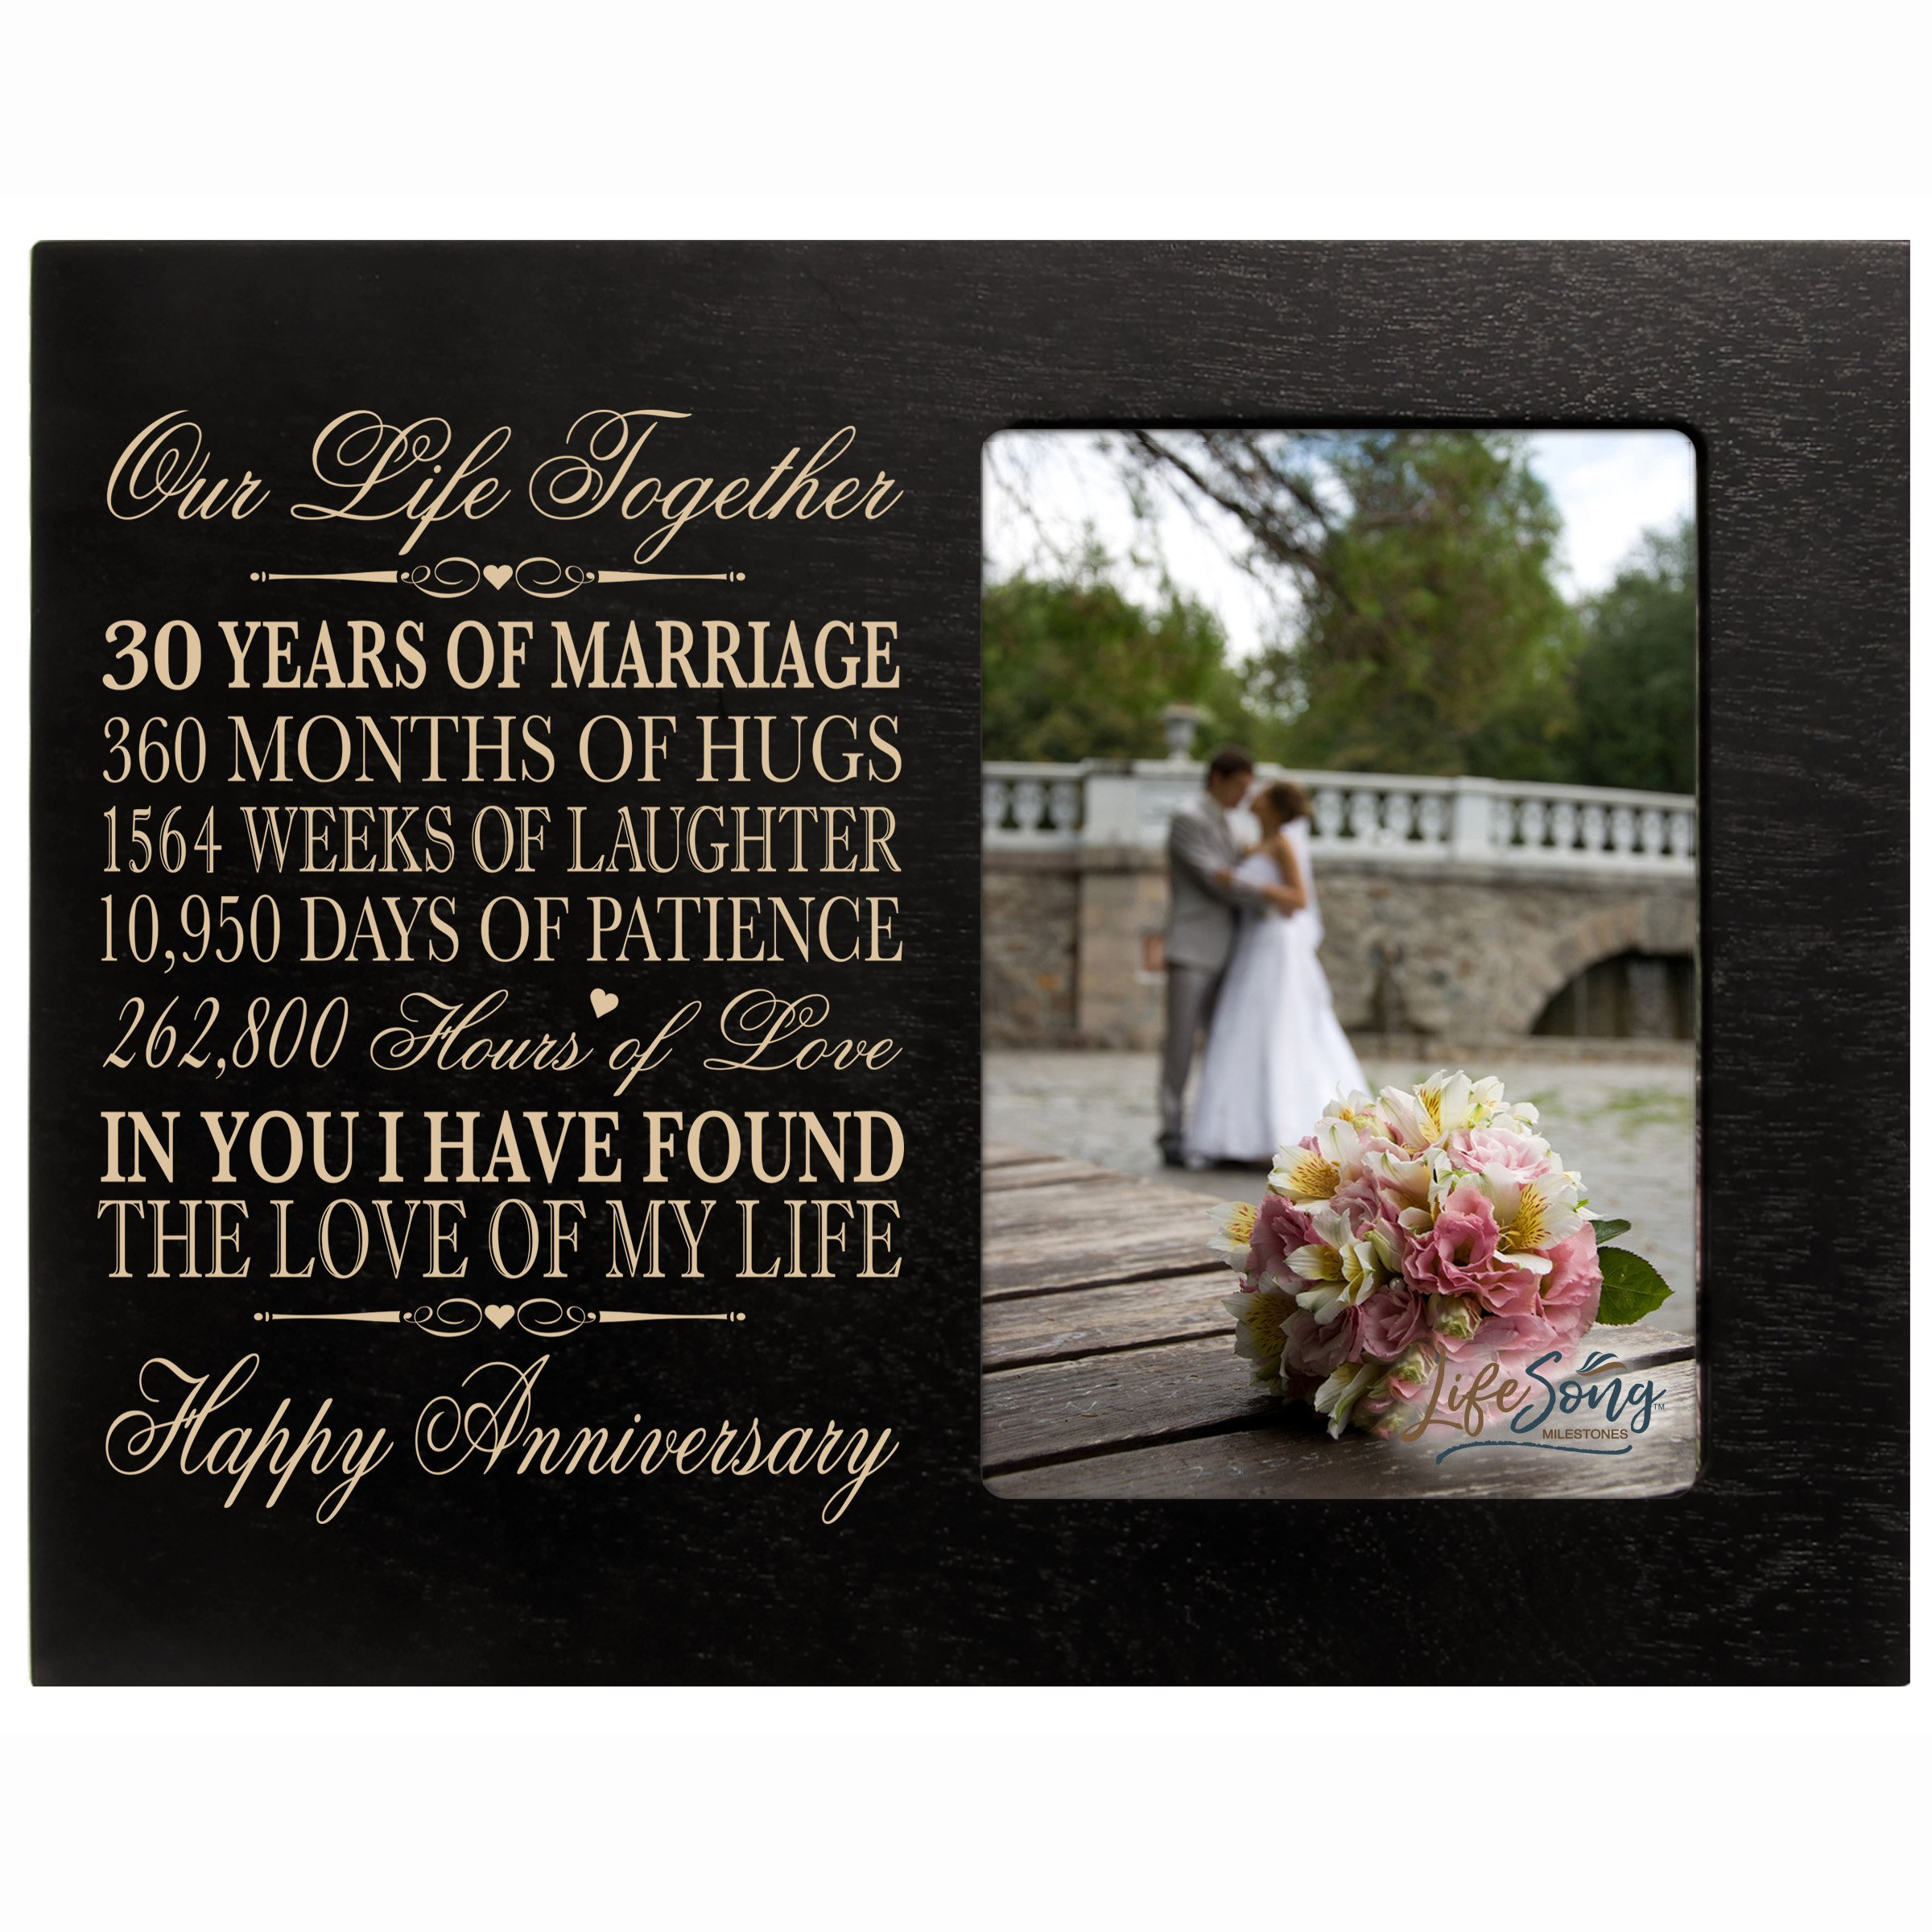 LifeSong Milestones 30 Year Anniversary Picture Frame Gift for her him Couple Custom Engraved 30th Year Wedding Celebration for Husband Wife Photo Frame Holds 1 4x6 Photo 8'' H X 10'' (Black)